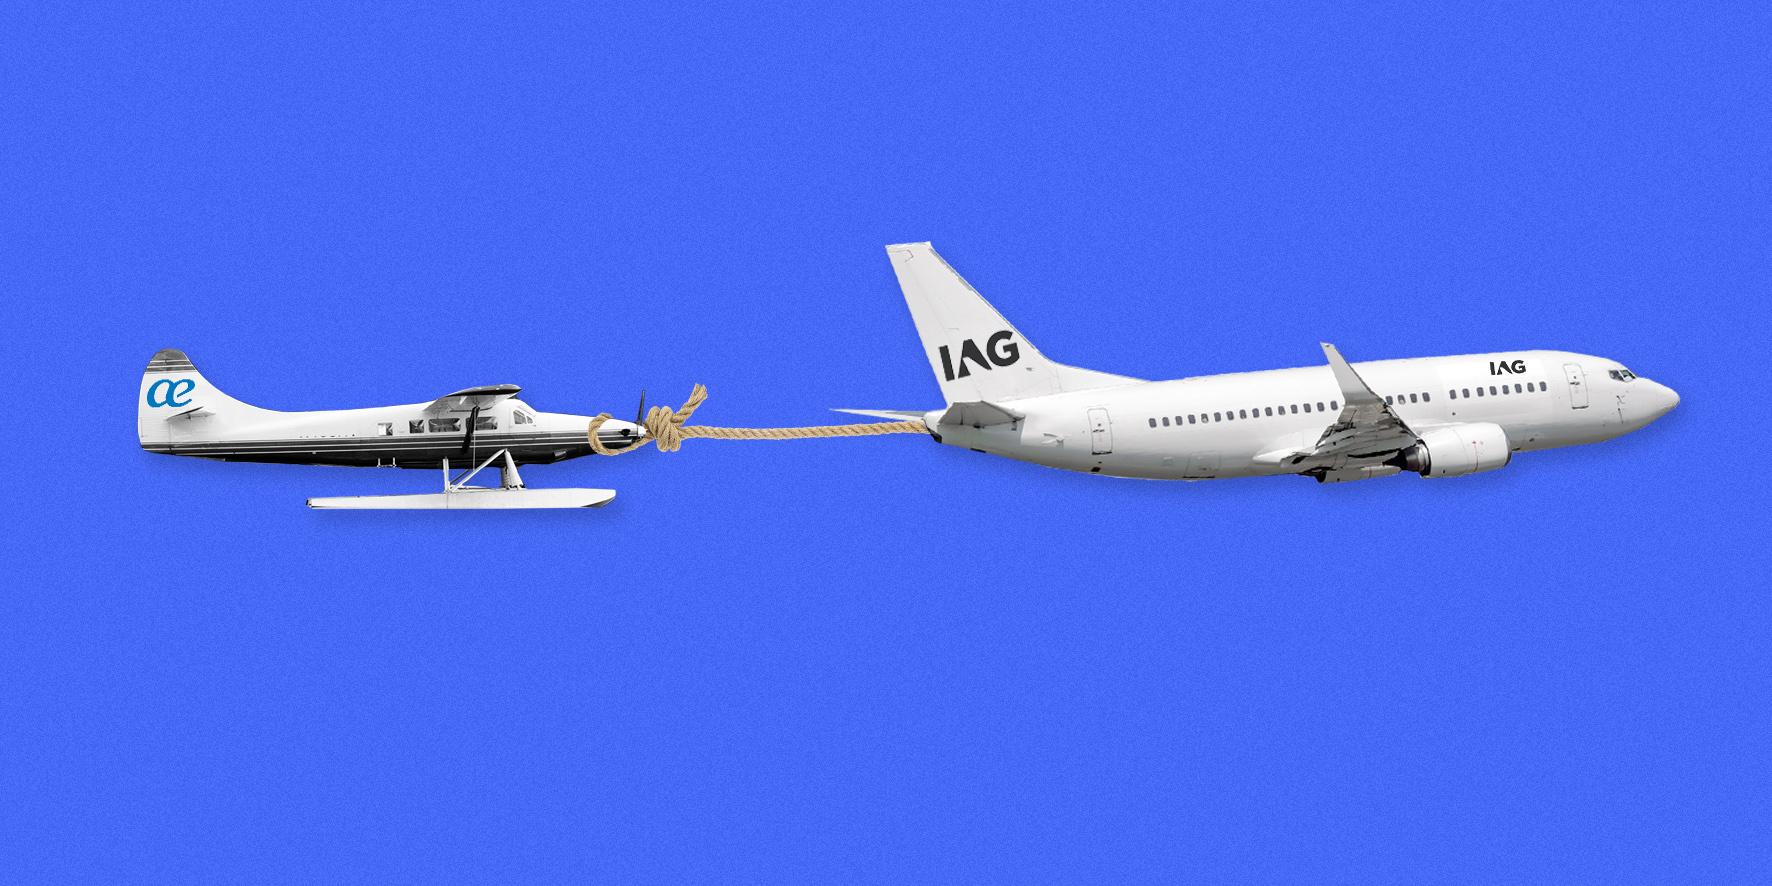 IAG buys AirEuropa